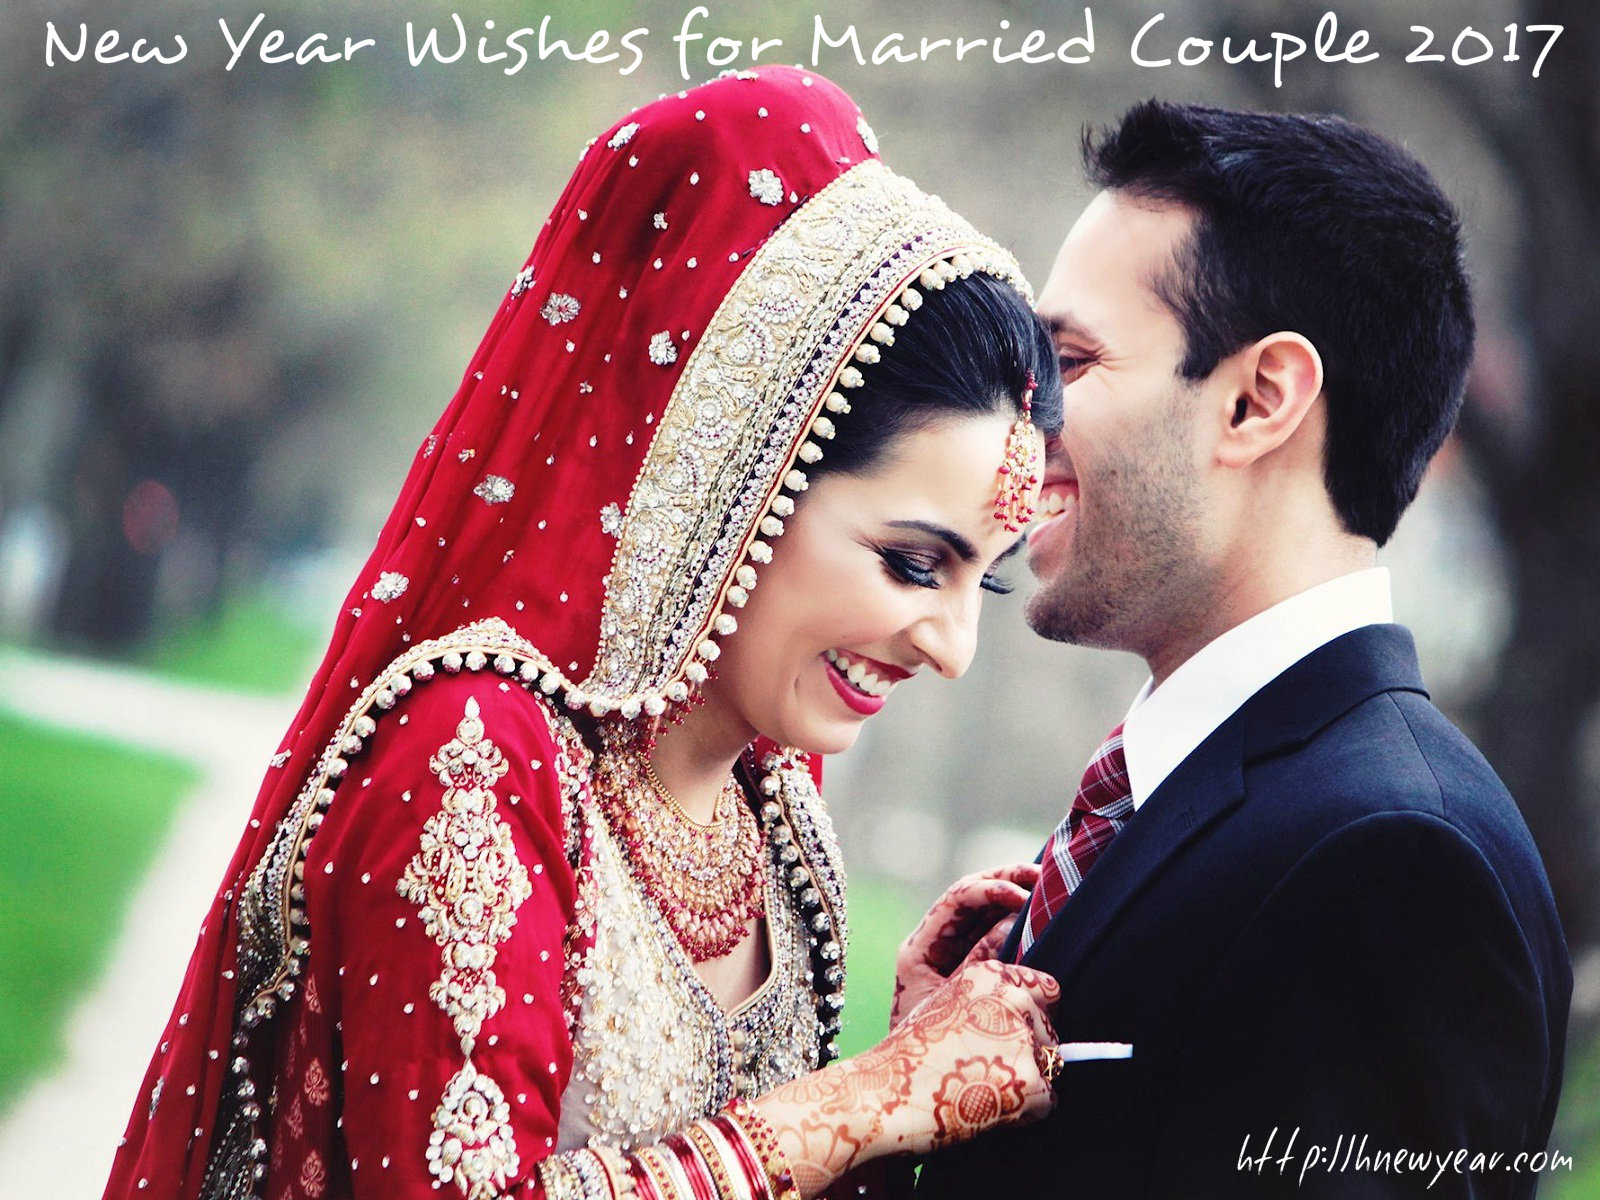 New Year Wishes for Married Couple 2017